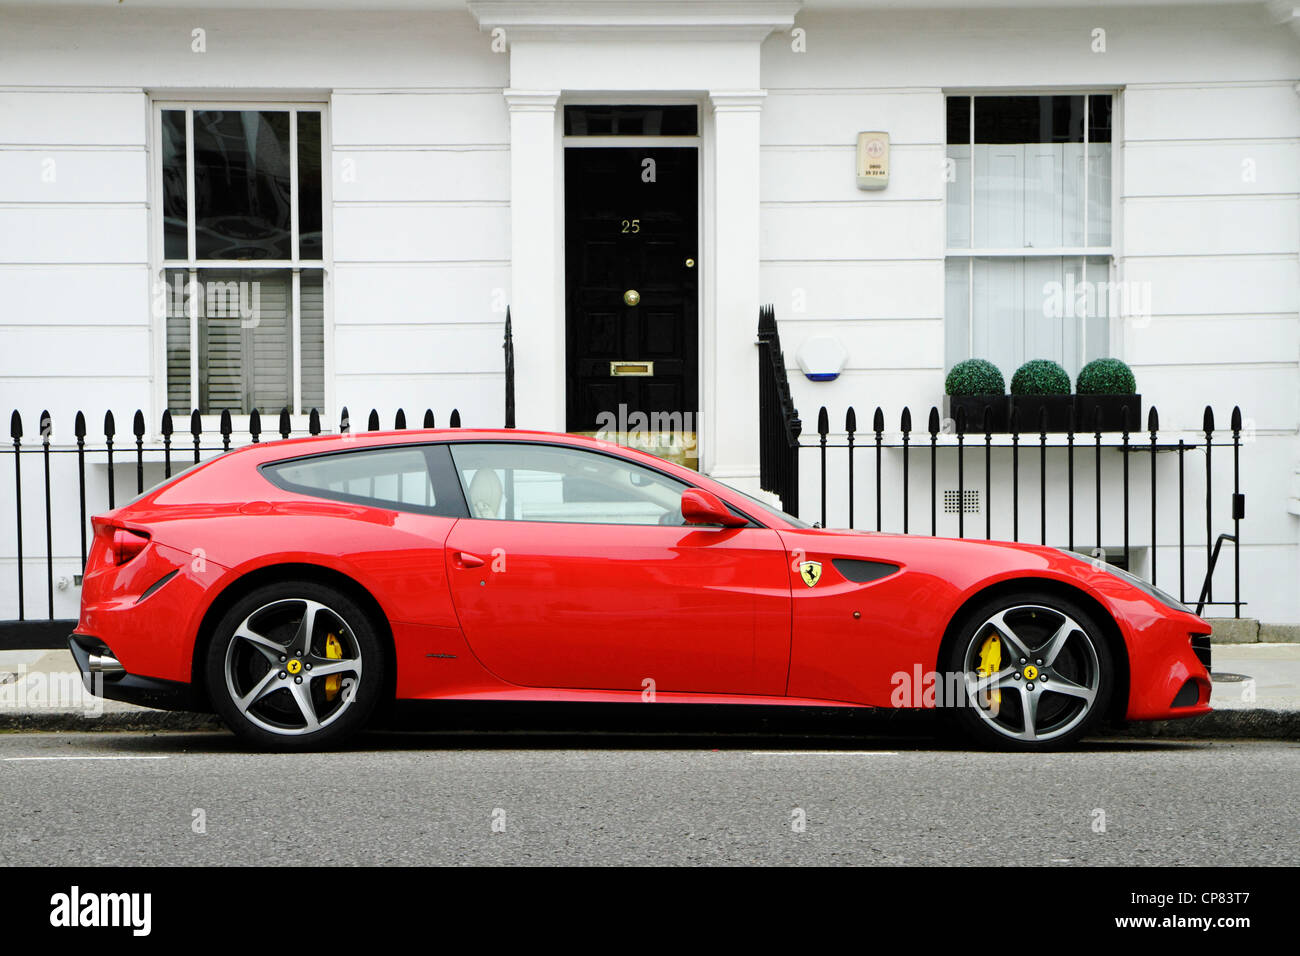 Red Ferrari FF sports car parked in affluent street, London borough of Kensington and Chelsea, UK Stock Photo